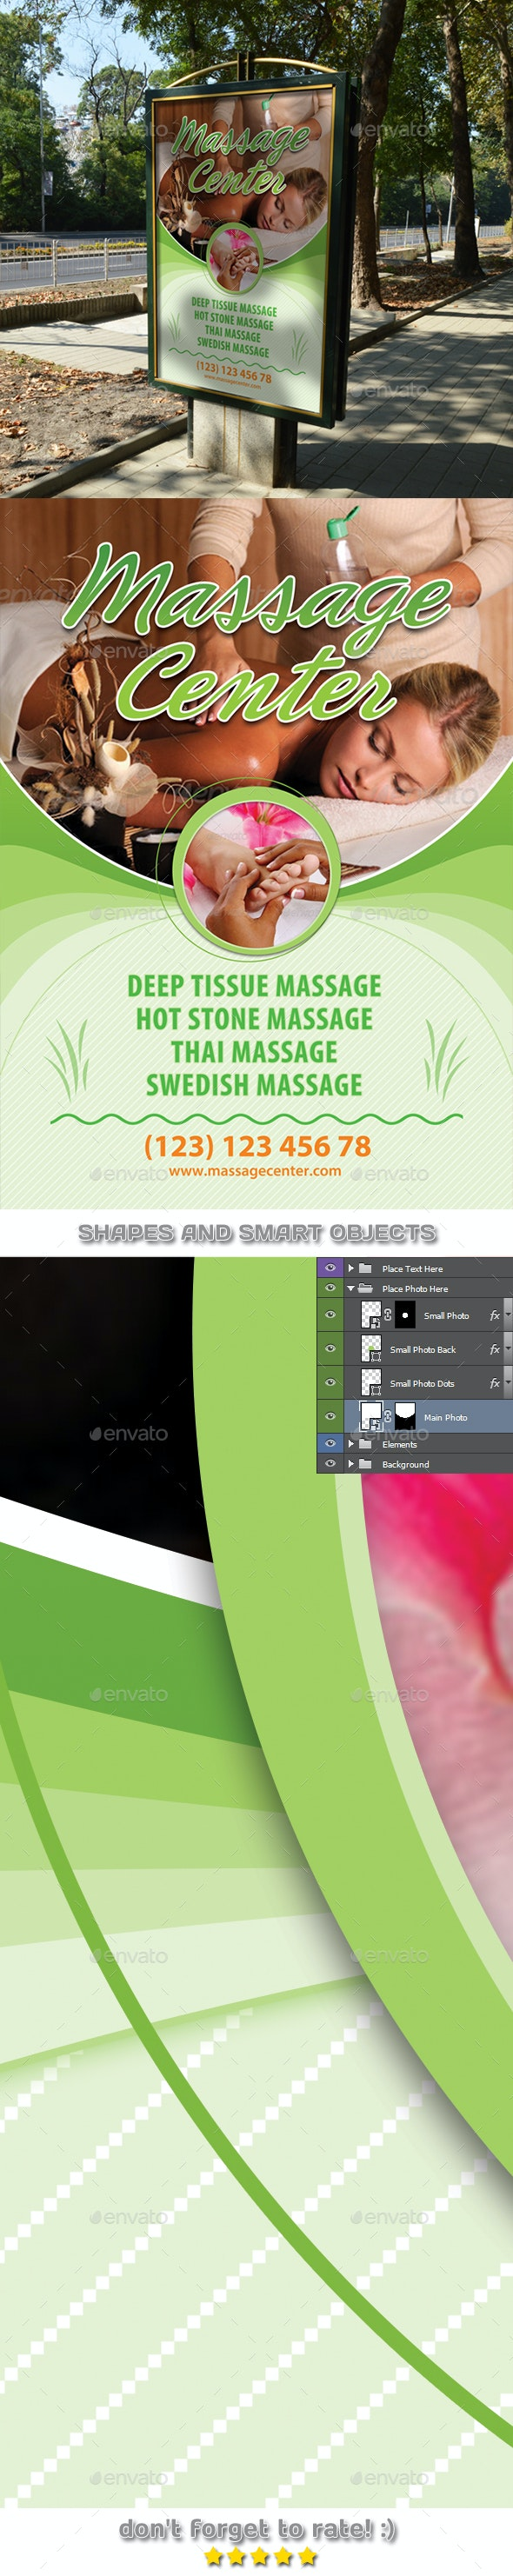 Massage and Spa Center Poster Template 54 - Signage Print Templates